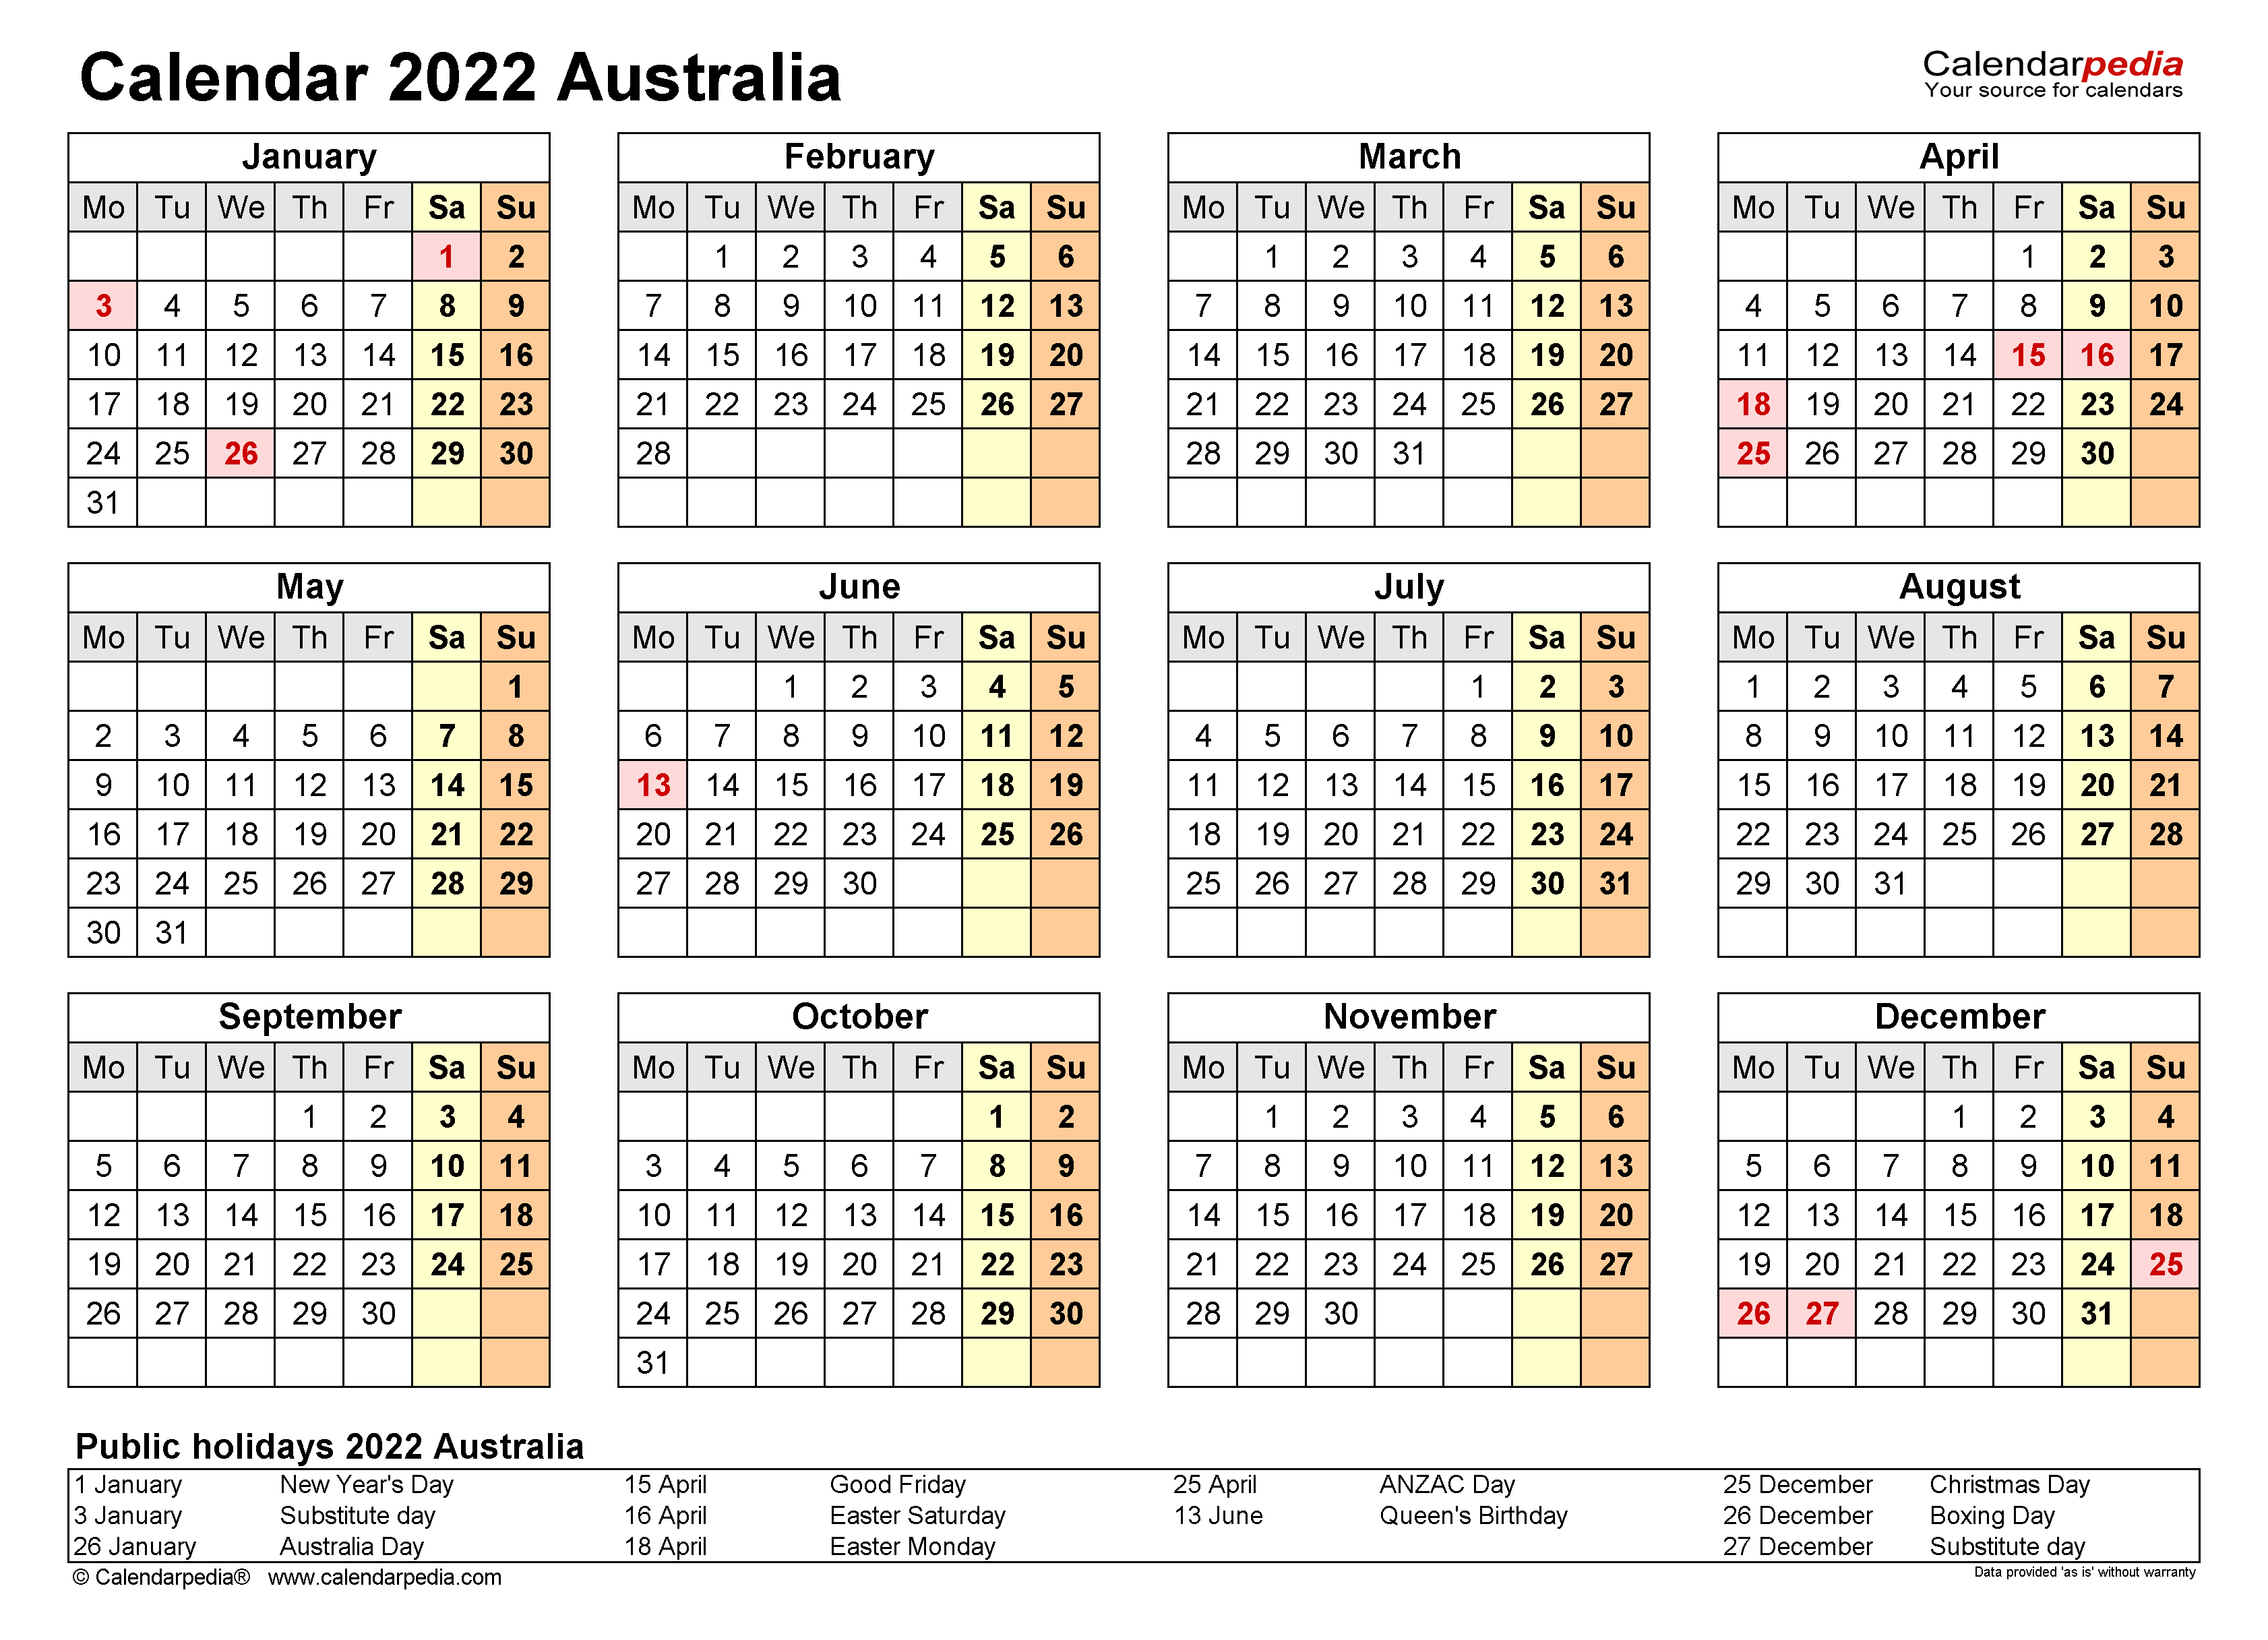 2021 wall calendars for free download available as free printable calendar. Australia Calendar 2022 - Free Printable Excel templates